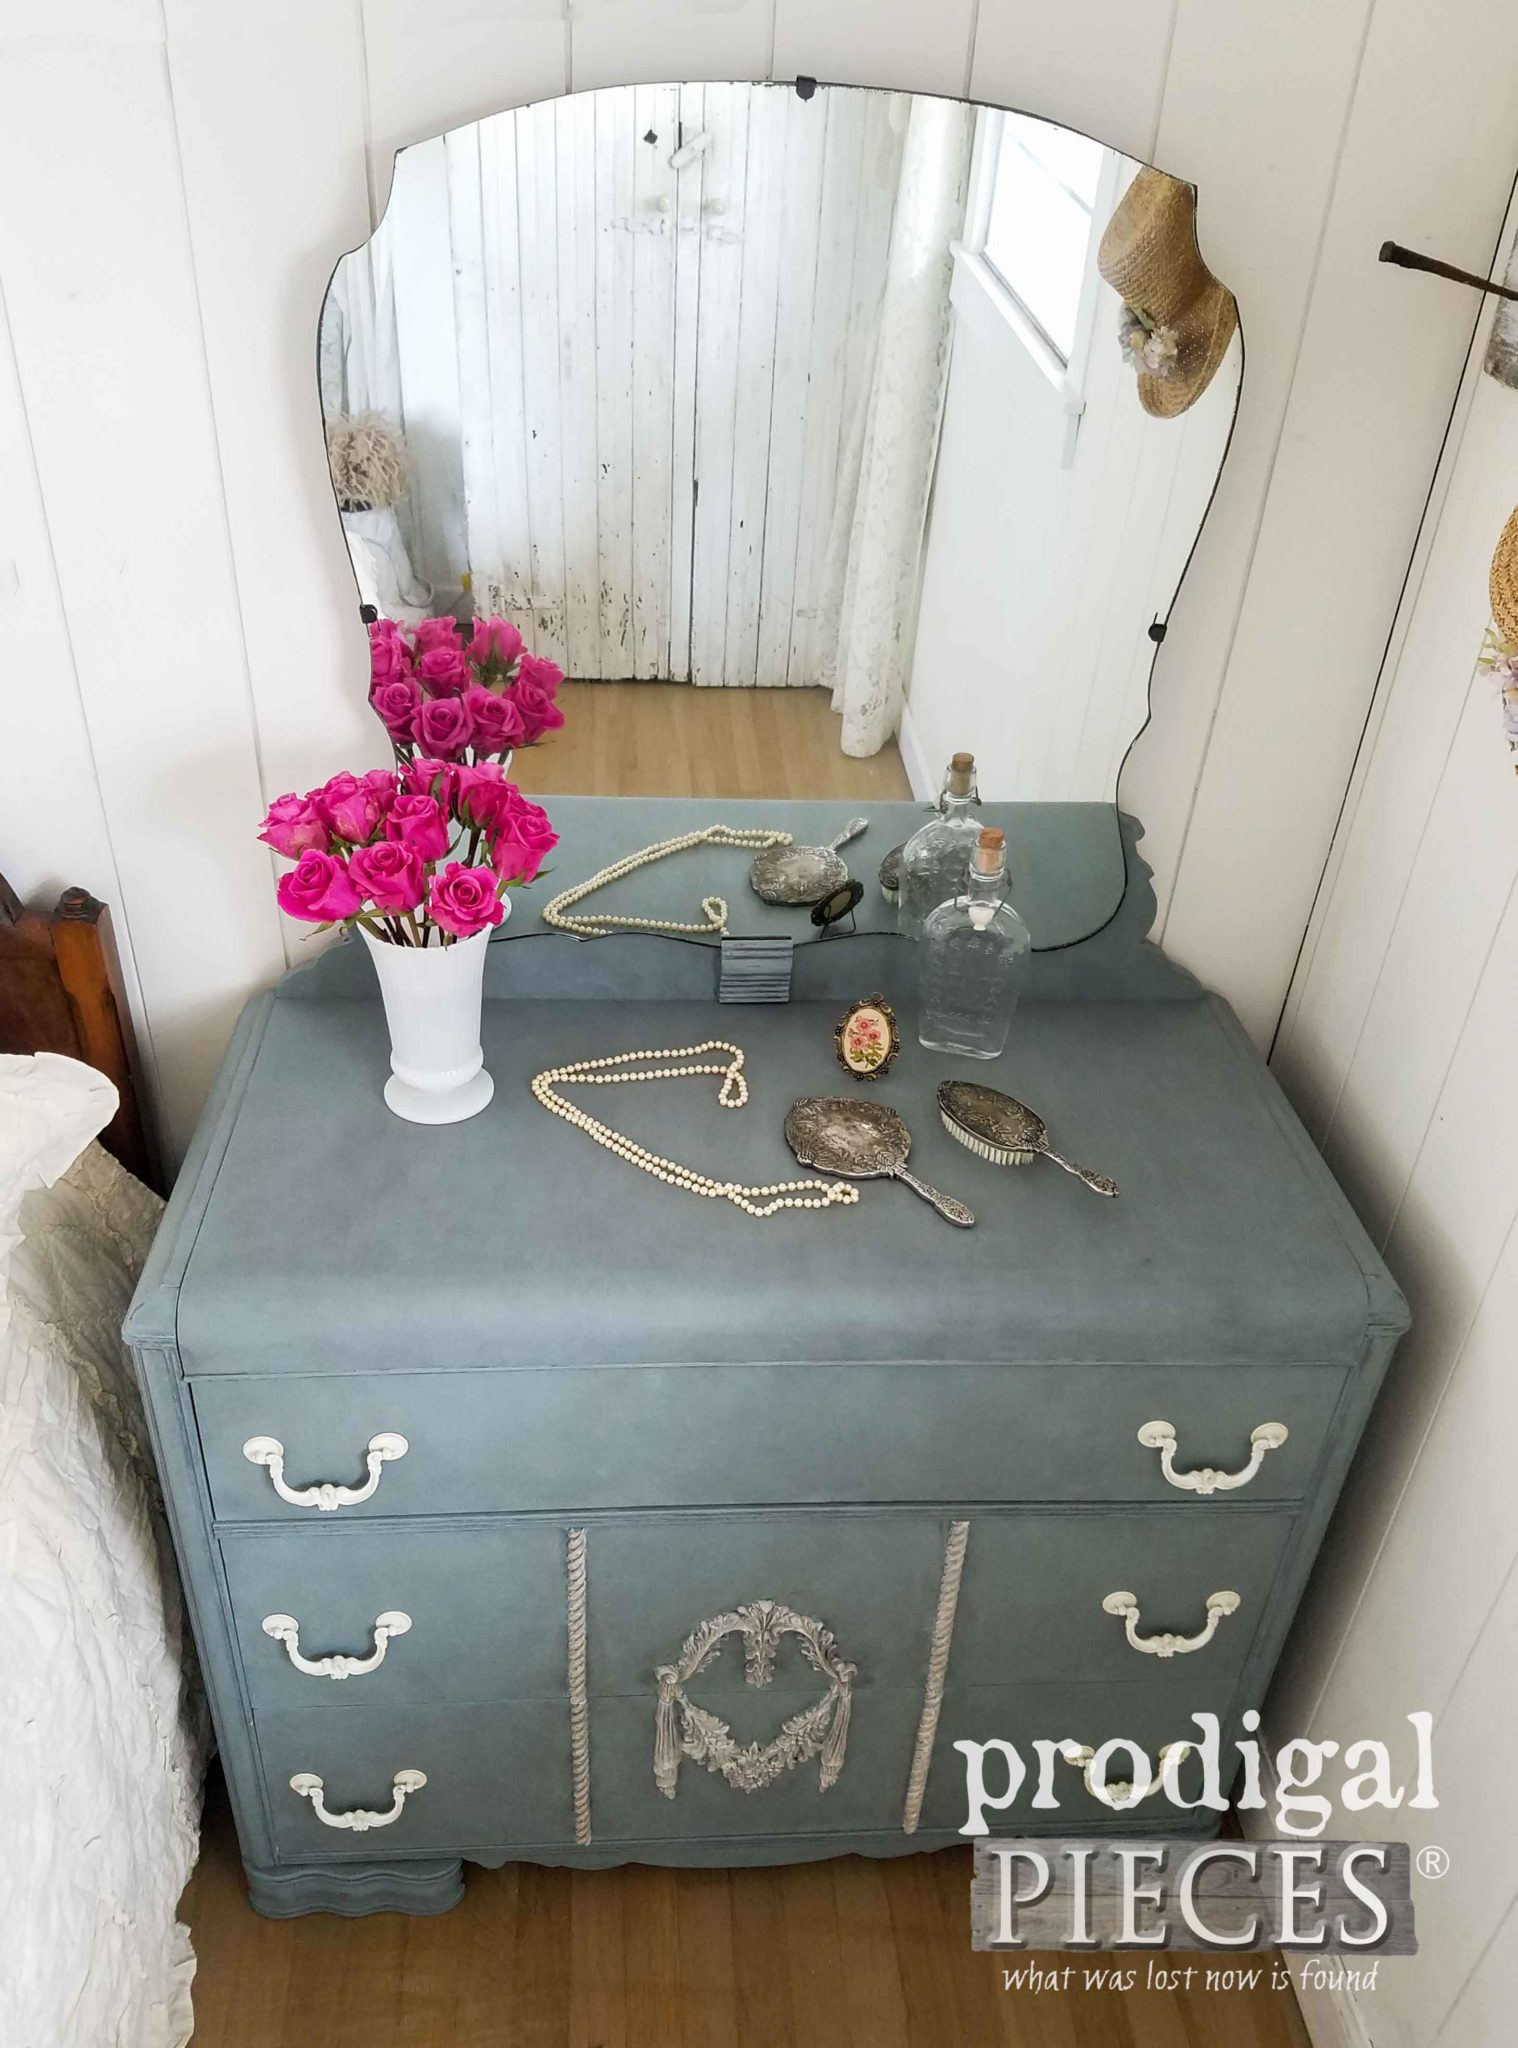 Vintage Waterfall Dresser Gets Fresh New Look by Prodigal Pieces | prodigalpieces.com